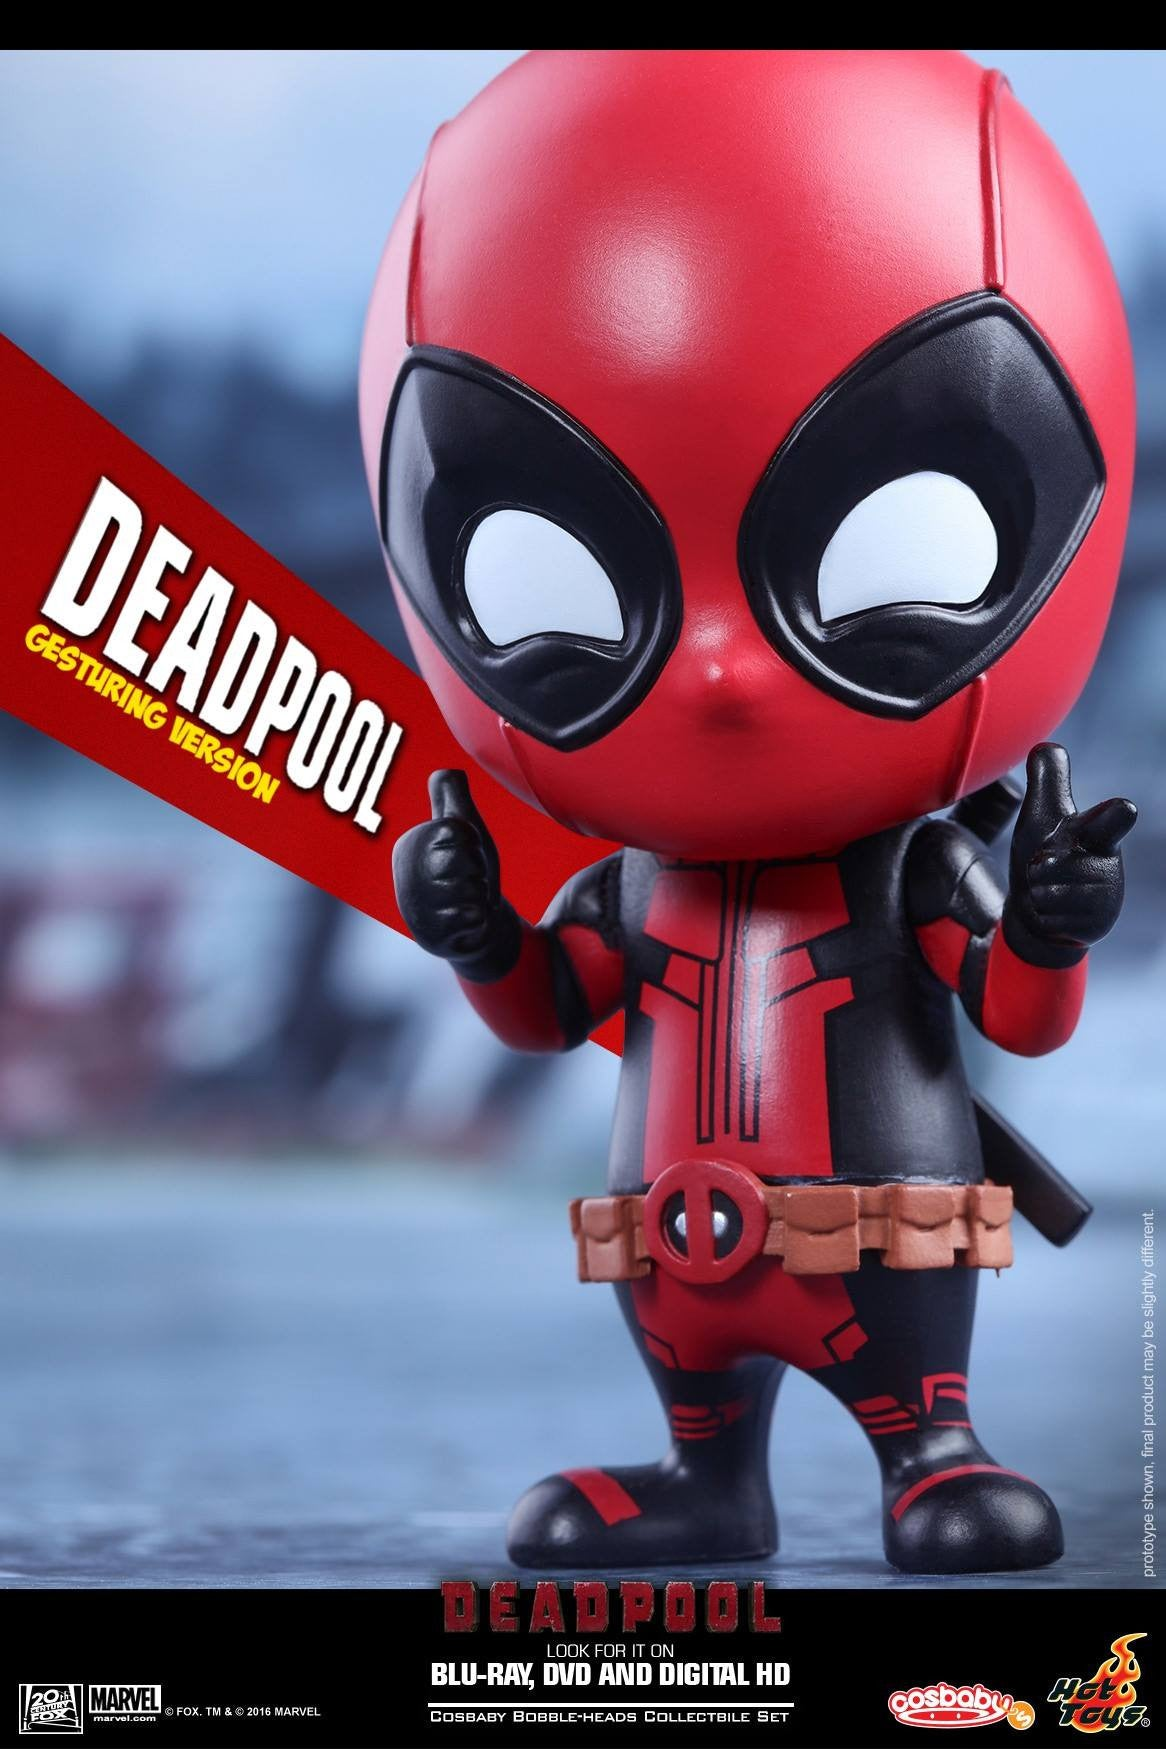 Hot Toys - COSB221 - Deadpool (Gesturing Version) Cosbaby Bobble-Head - Marvelous Toys - 4